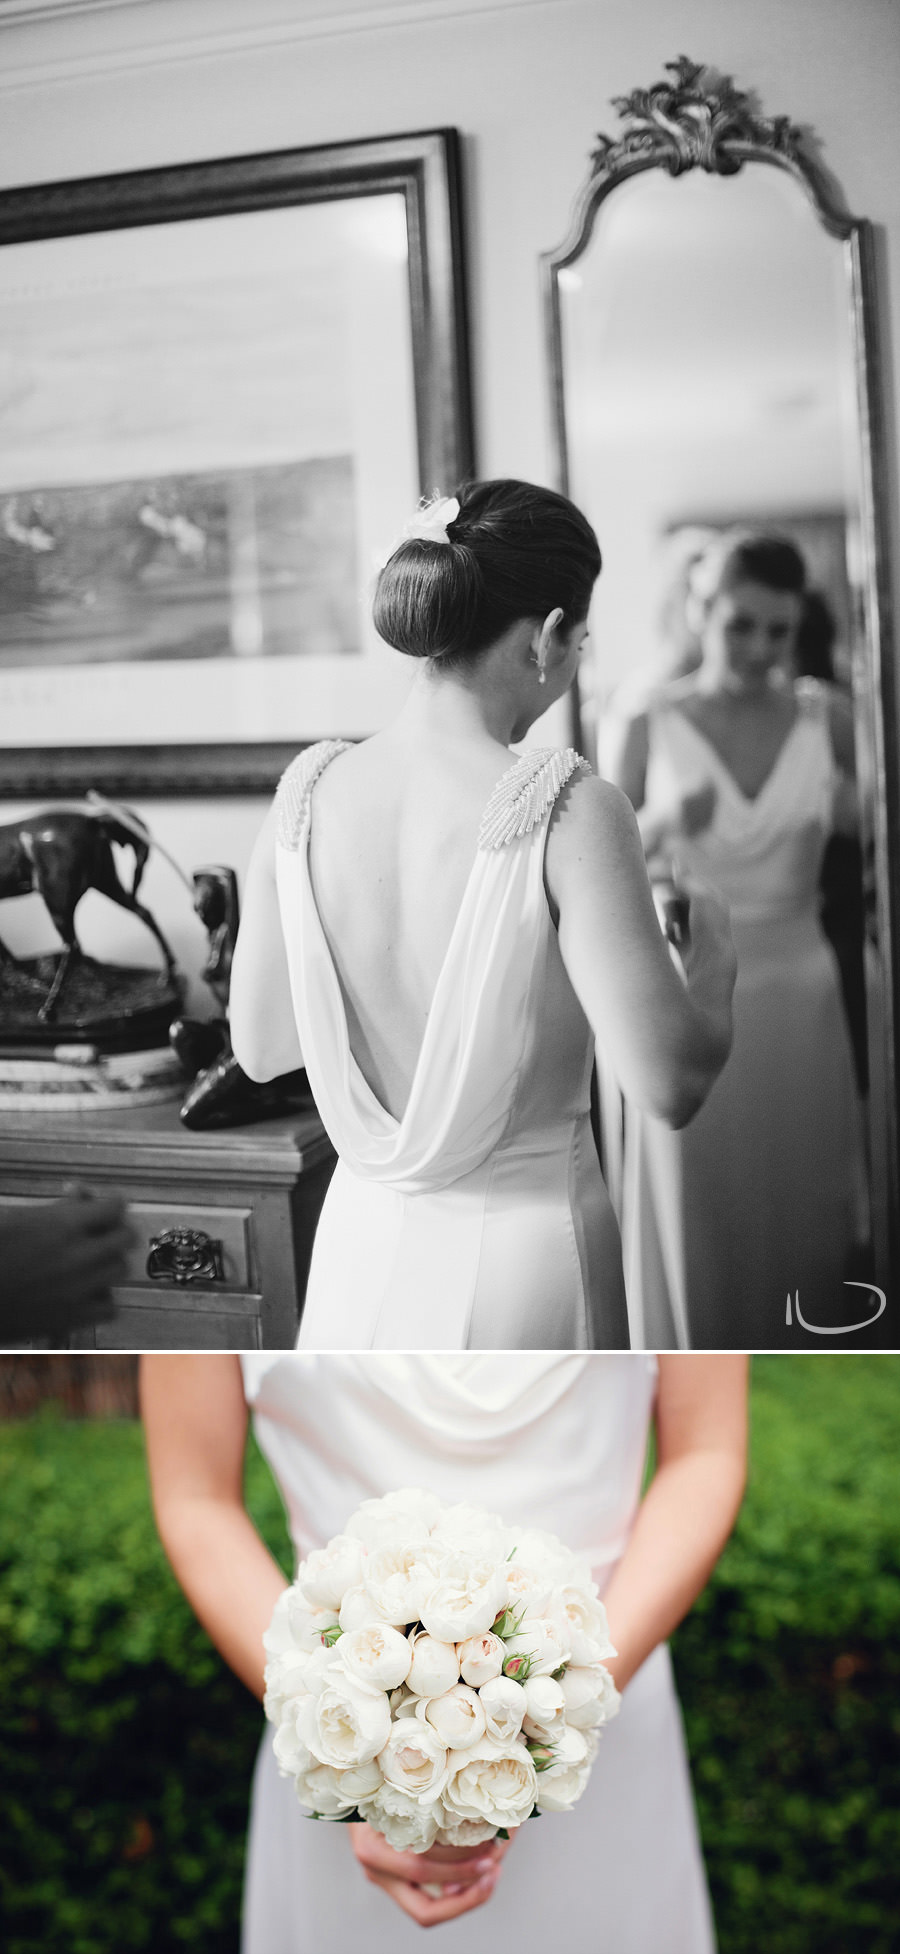 Wedding Photographer in Sydney: Bride getting dressed